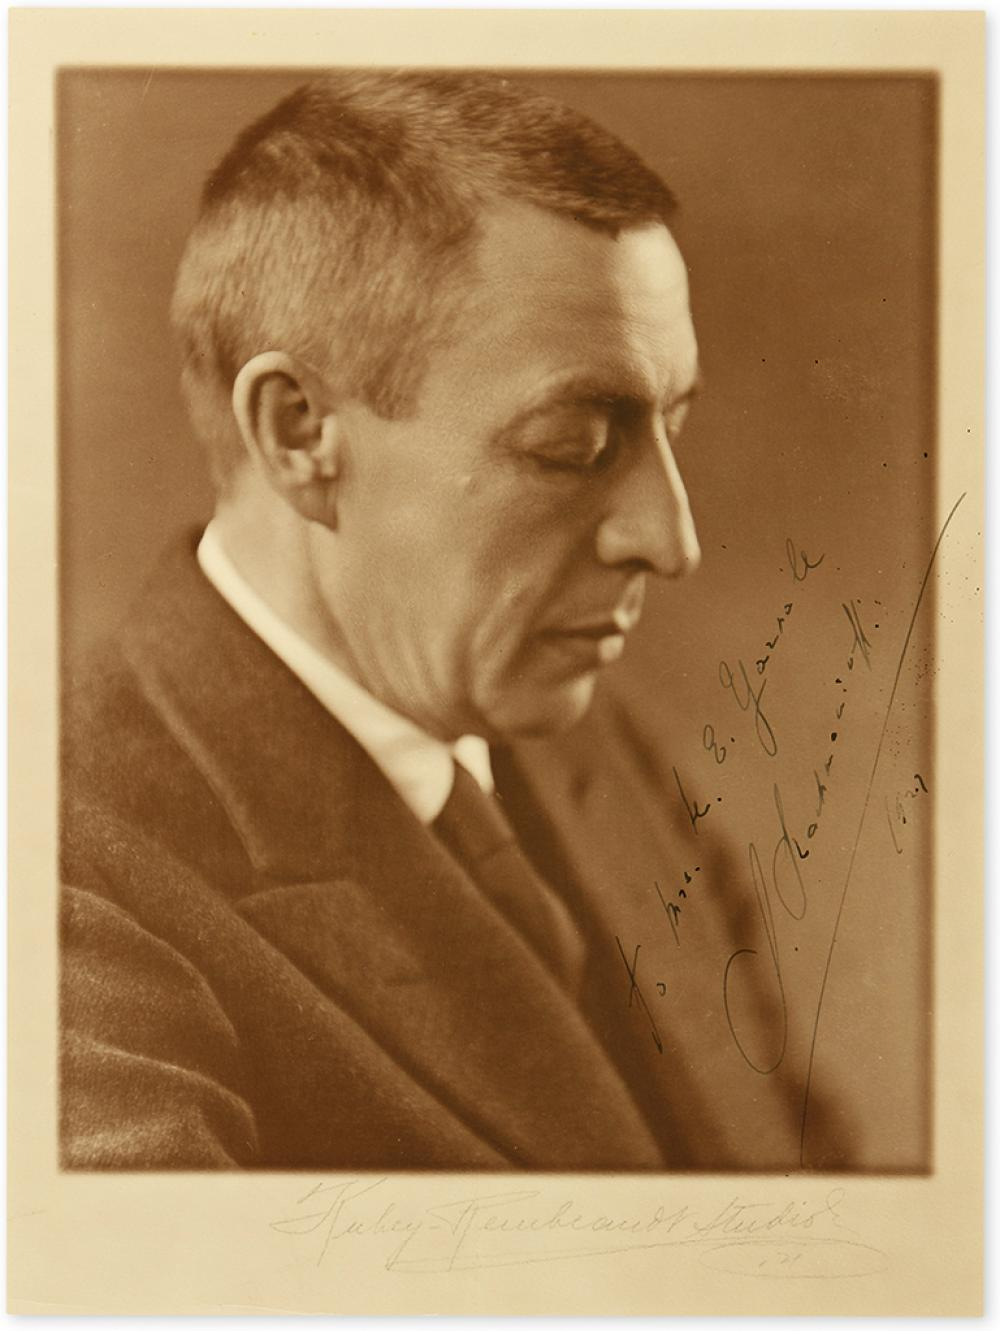 RACHMANINOFF, SERGEI. Photograph Signed and Inscribed,